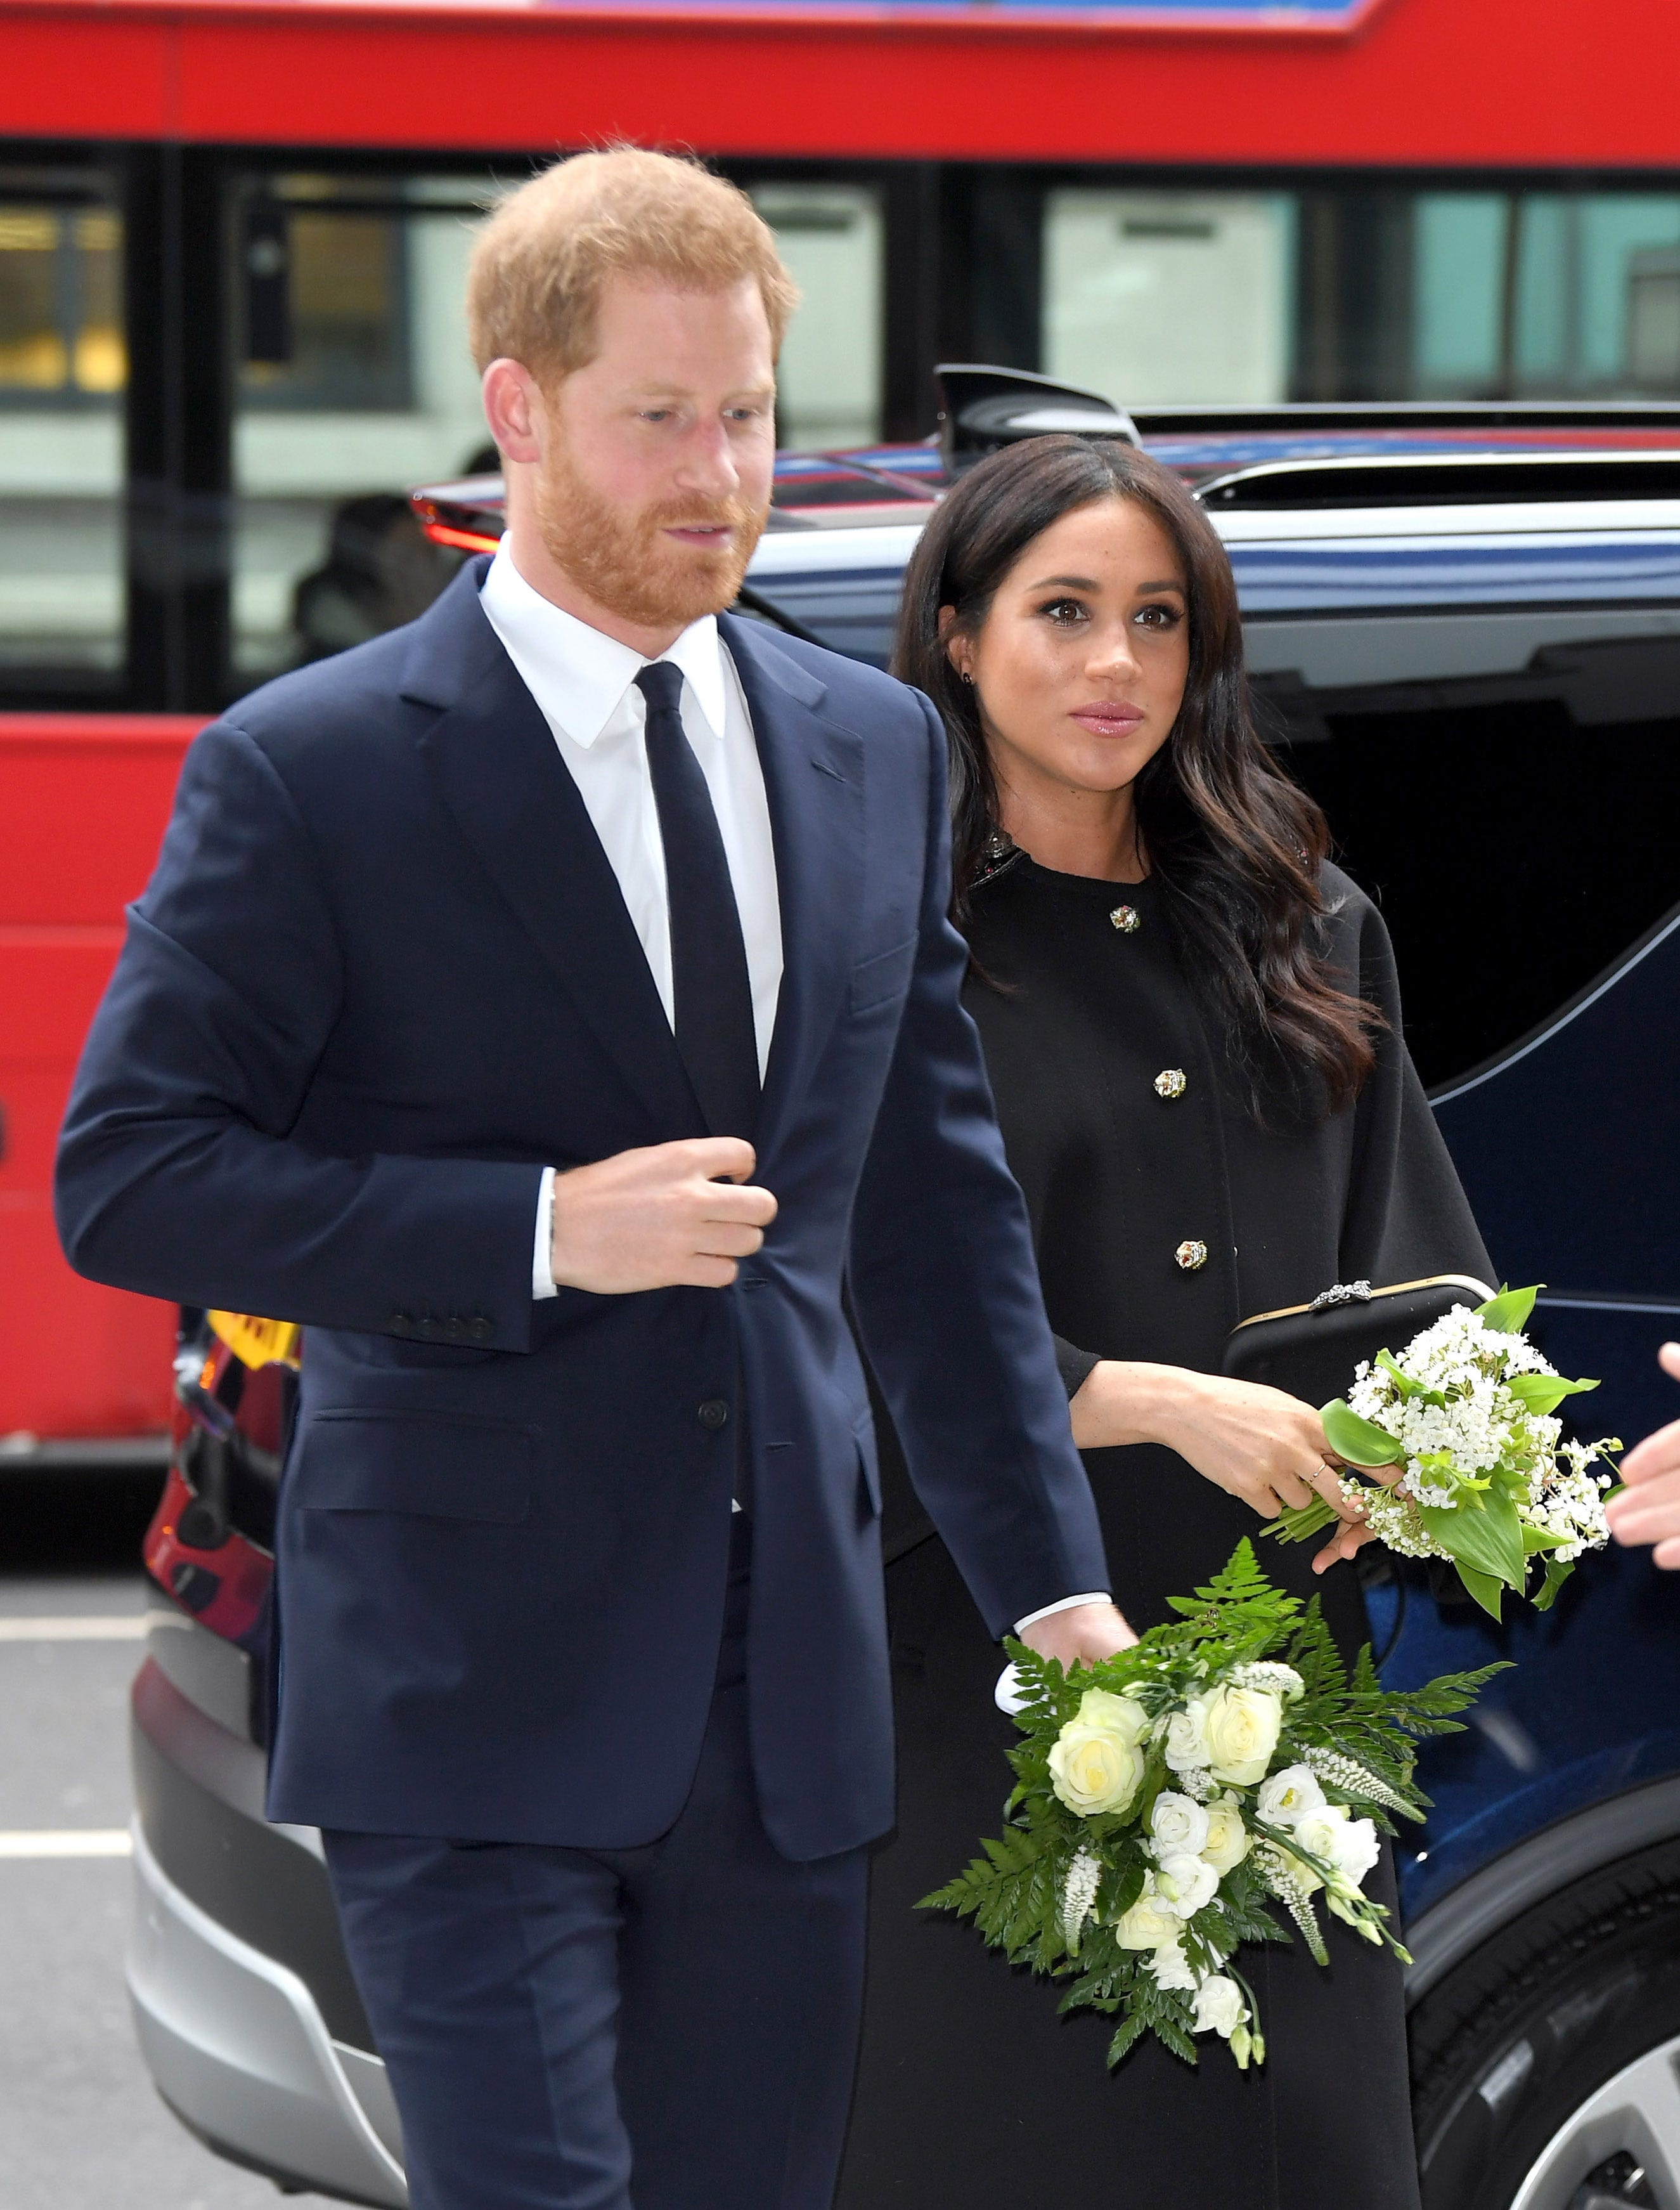 An Ambulance Was Spotted Near Meghan Markle & Prince Harry's Home